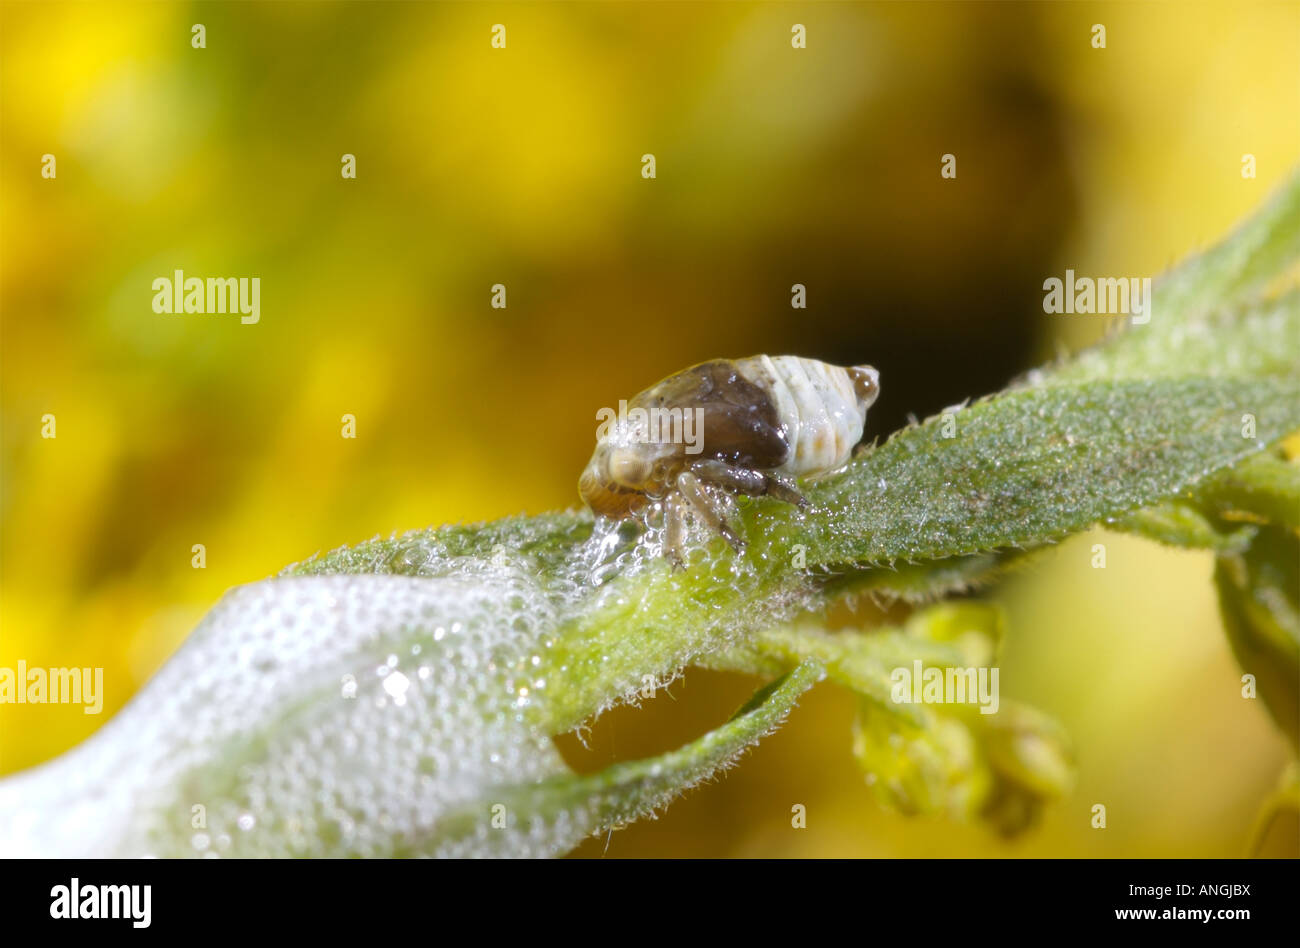 spittle-bug-nymph-cercopidae-on-a-golden